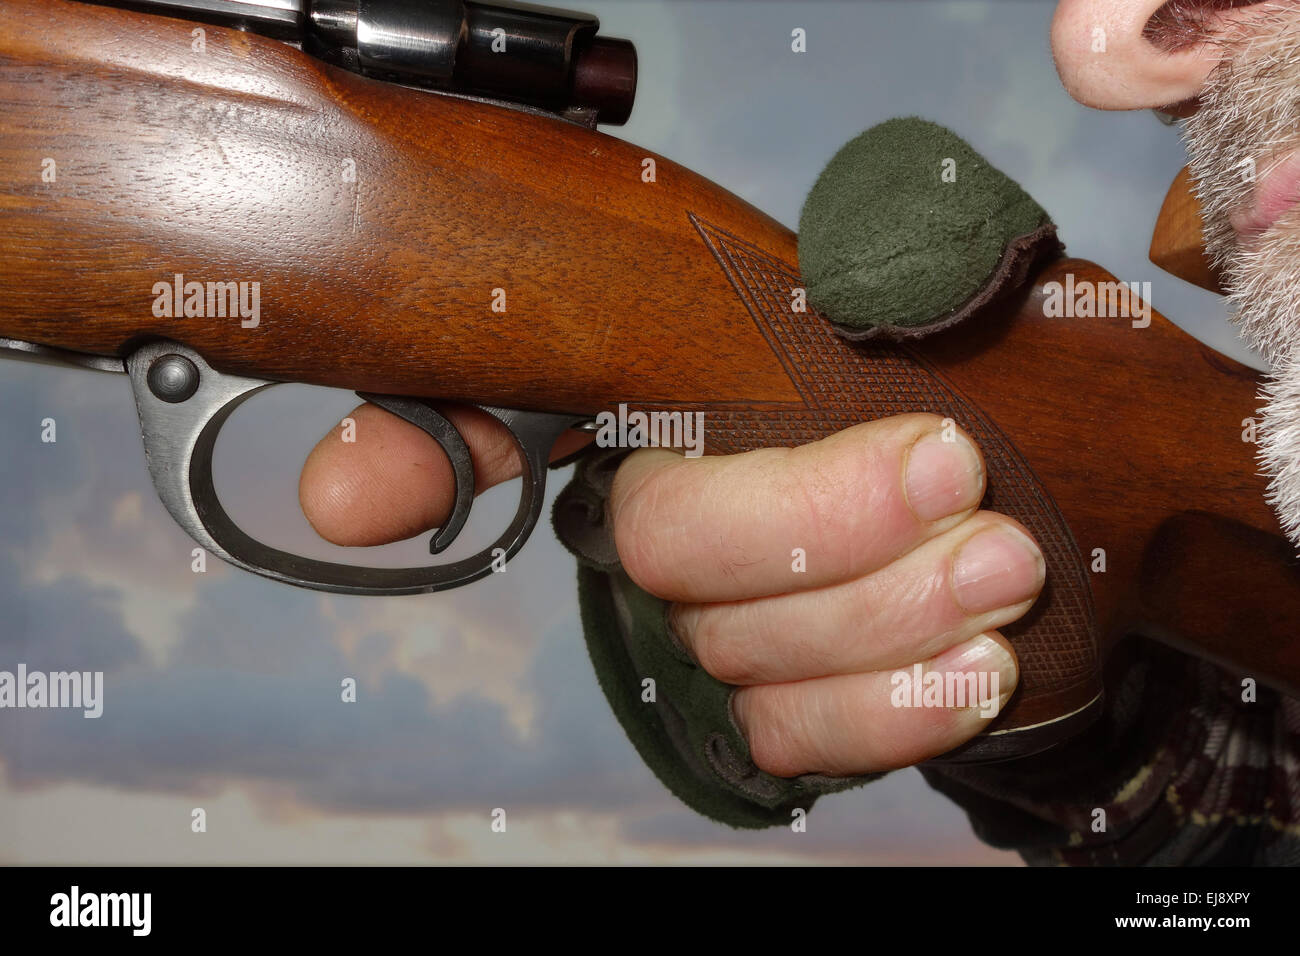 Close up of an index finger on the trigger and a hunter who is about to shoot the riffle. - Stock Image